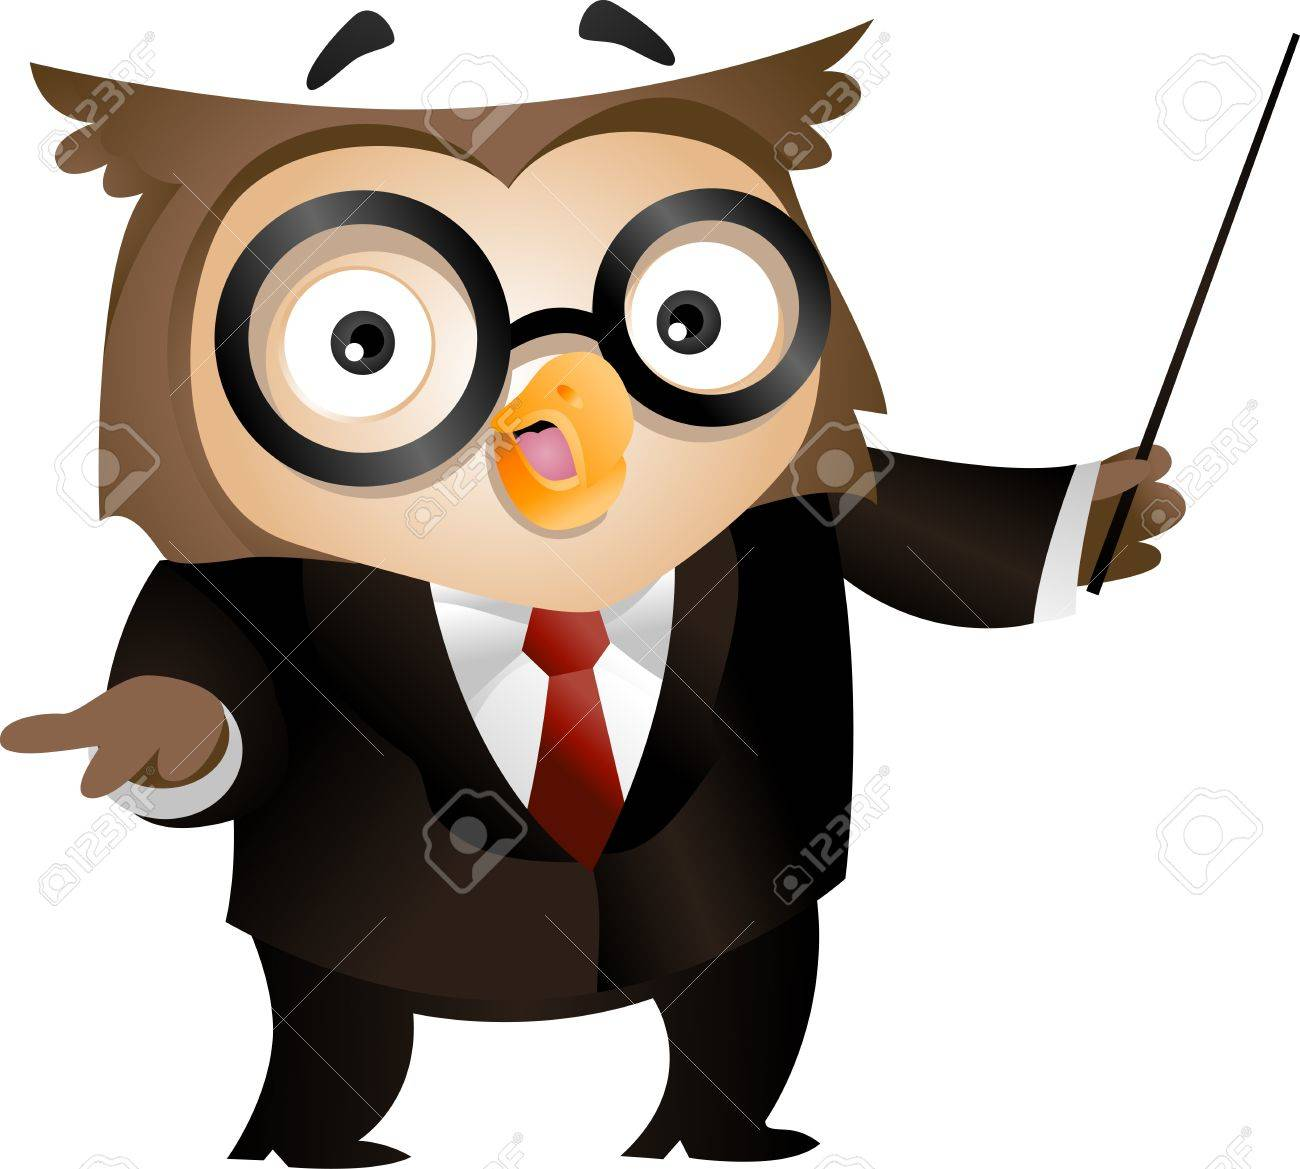 1300x1169 Illustration Of An Owl Holding A Stick To Emphasize What He Is